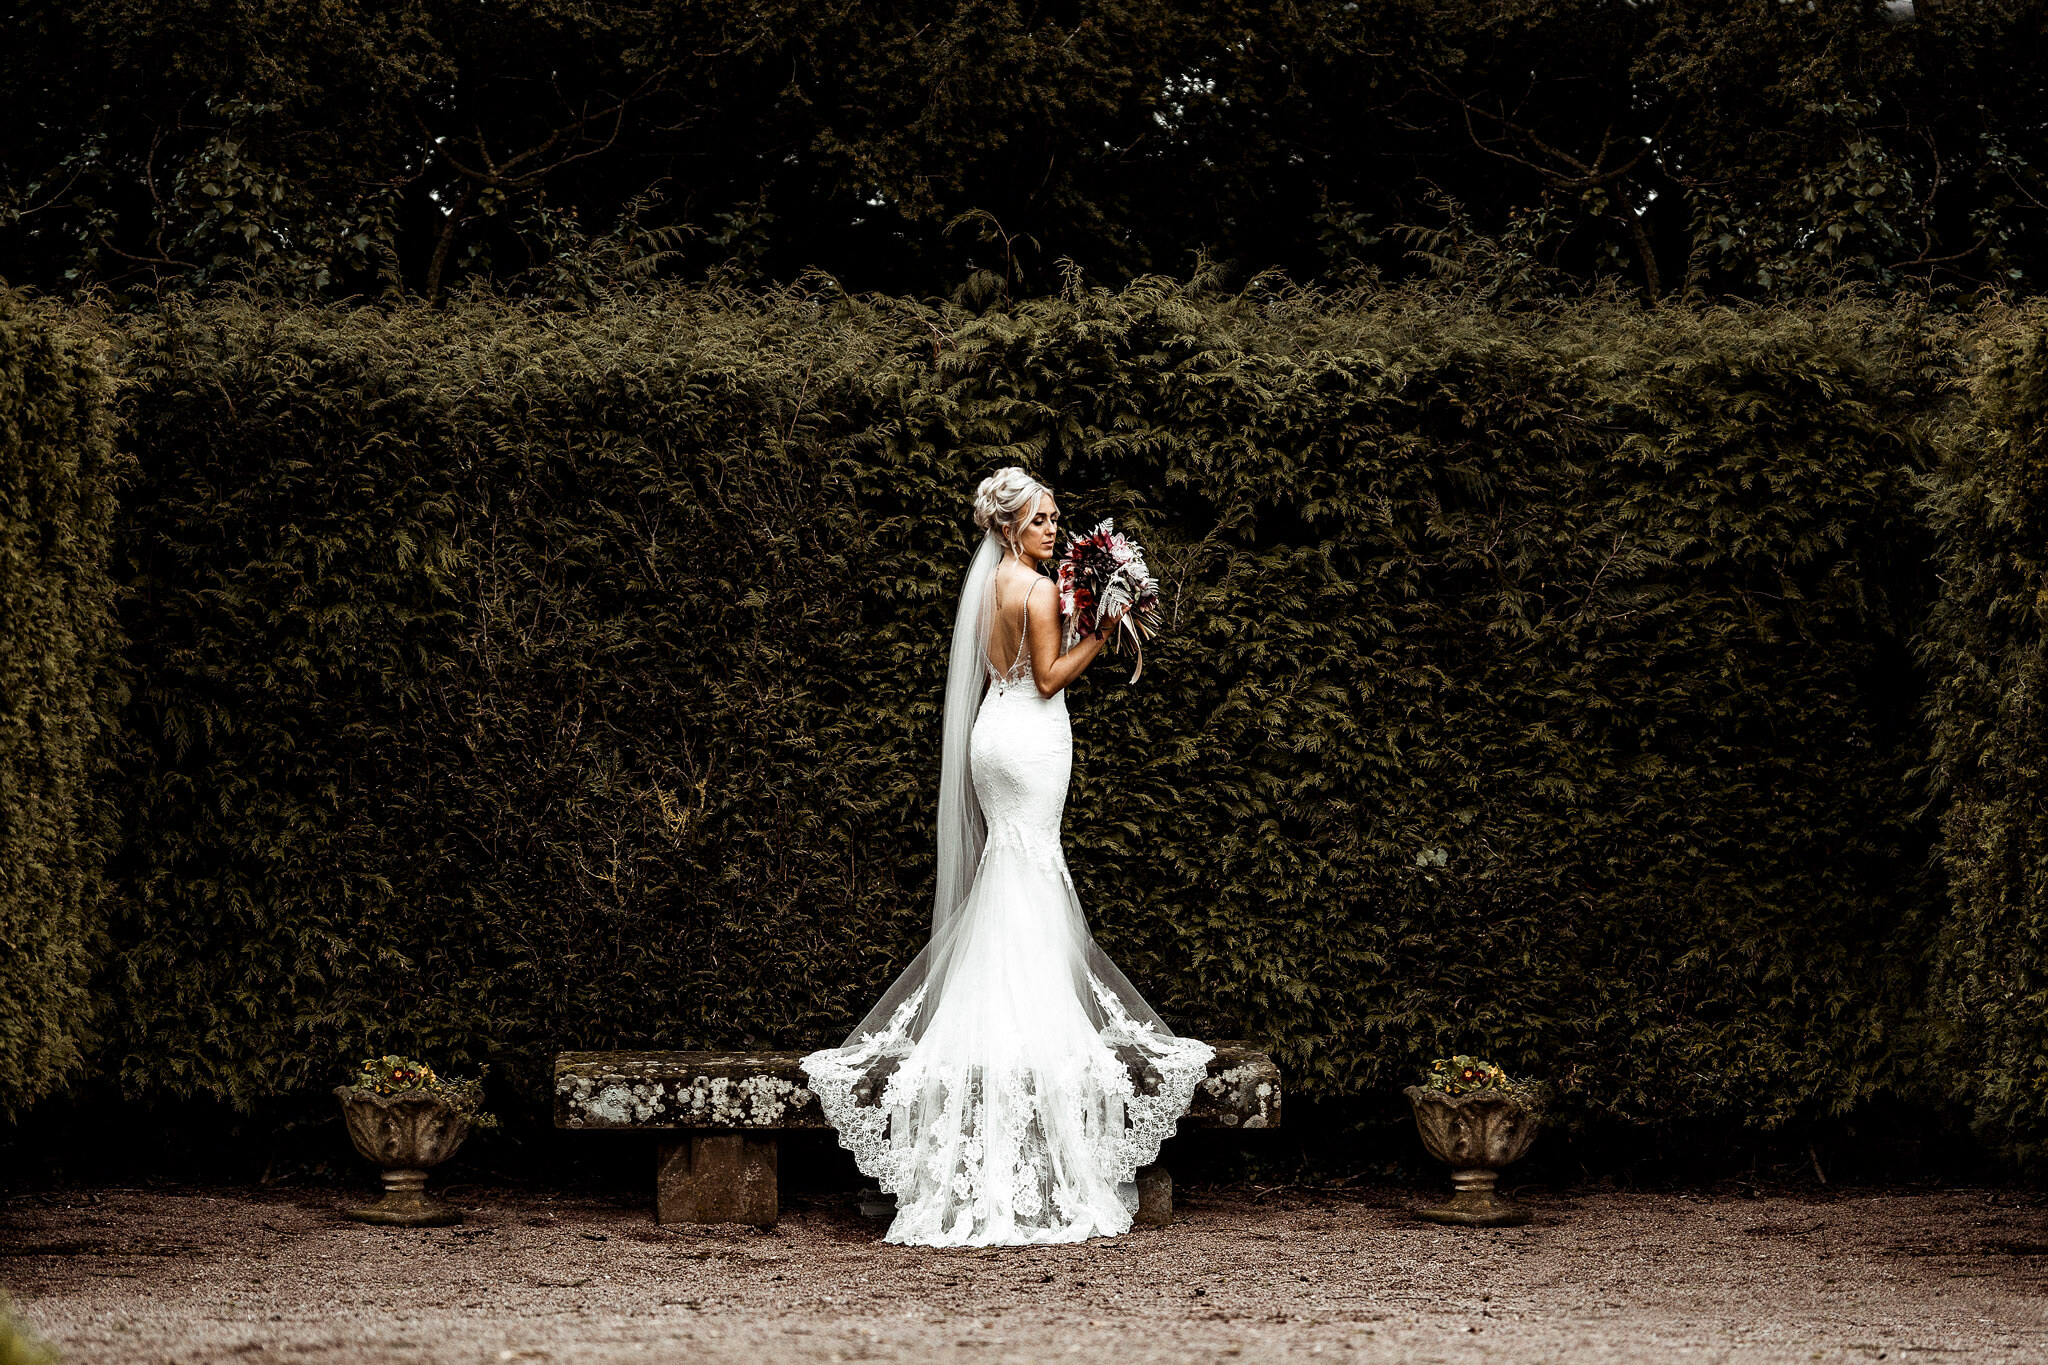 Photo taken of the back of the bride as the bride looks back into the camera - special moments